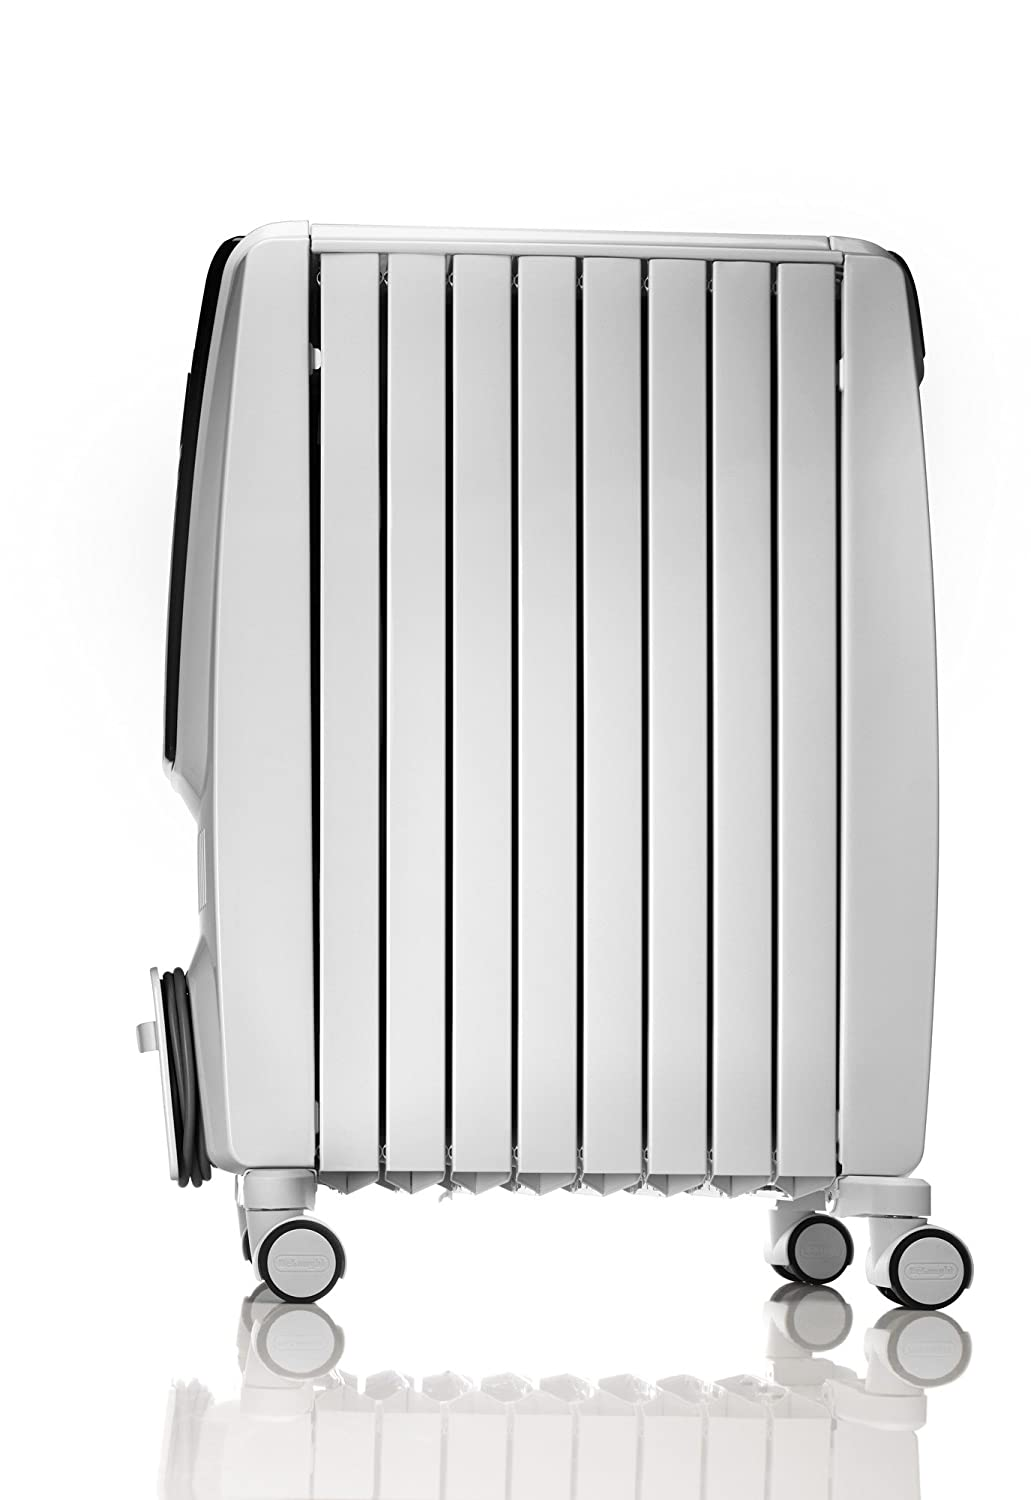 DeLonghi Dragon 4 Oil Filled Radiator with Timer TRD4 0615T, 1.5 KW - White by DeLonghi: Amazon.es: Hogar